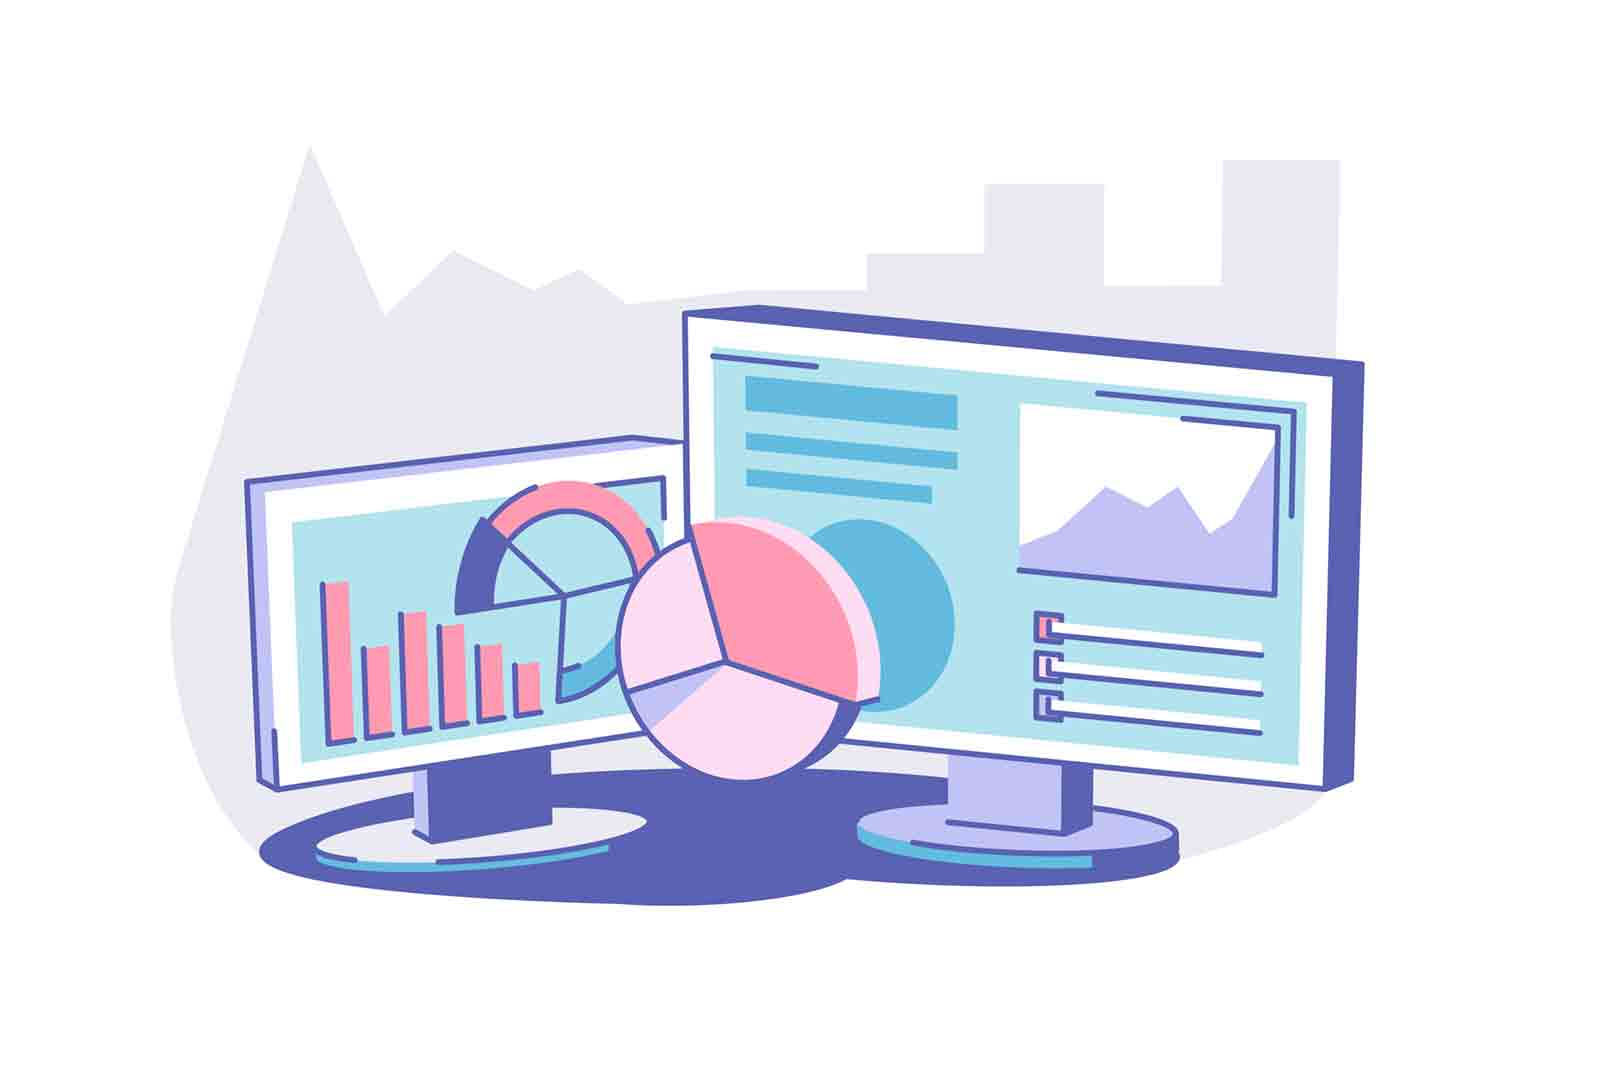 Modern computer on table vector illustration. Pc screen with business graphs and data. Working process. Dashboard and technology concept.